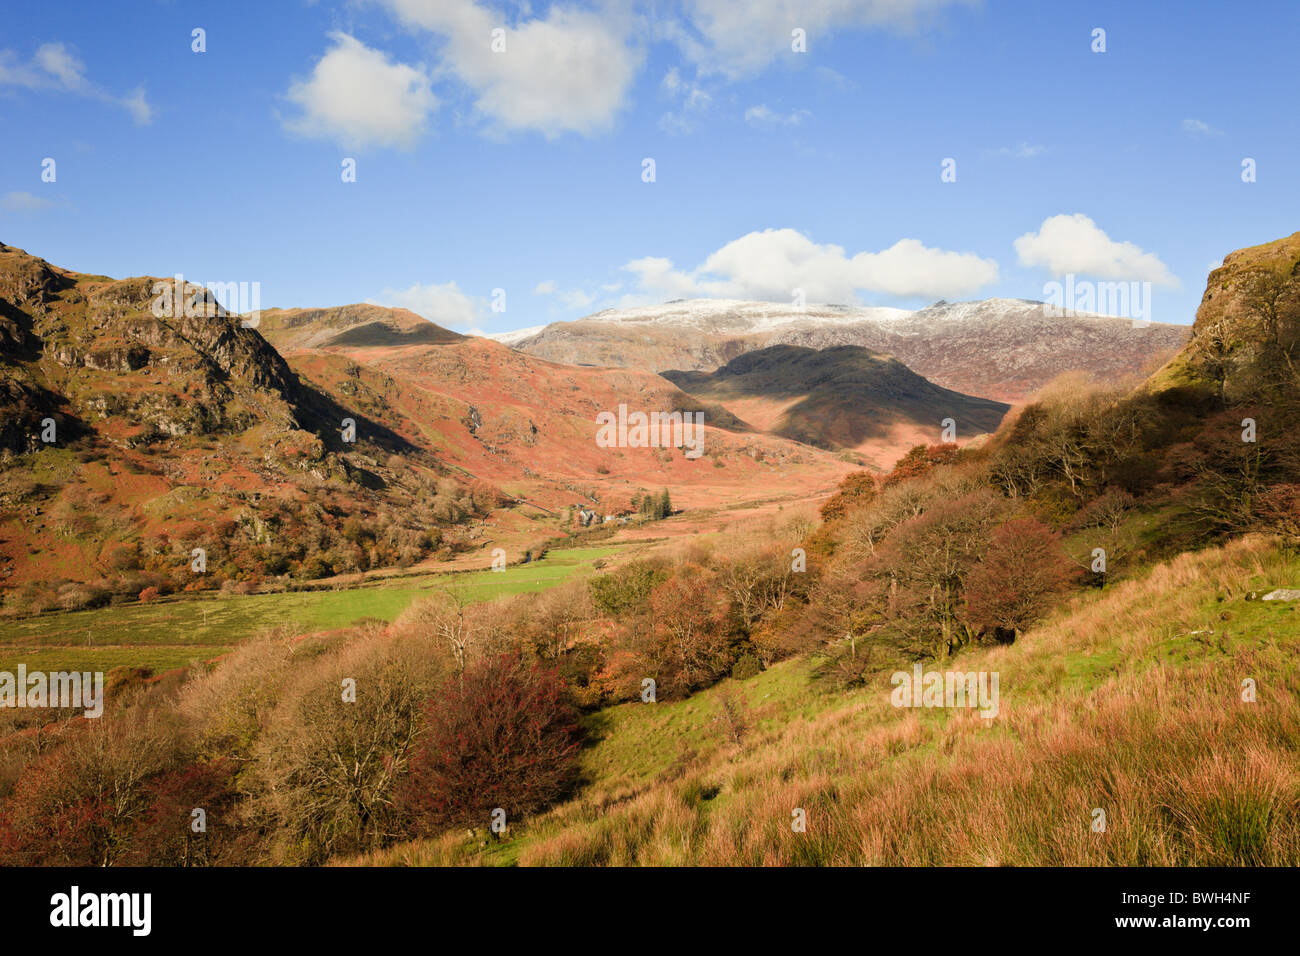 Nant Gwynant, Gwynedd, North Wales, UK. View along the valley to distant Glyder mountains in Snowdonia National Park in autumn Stock Photo